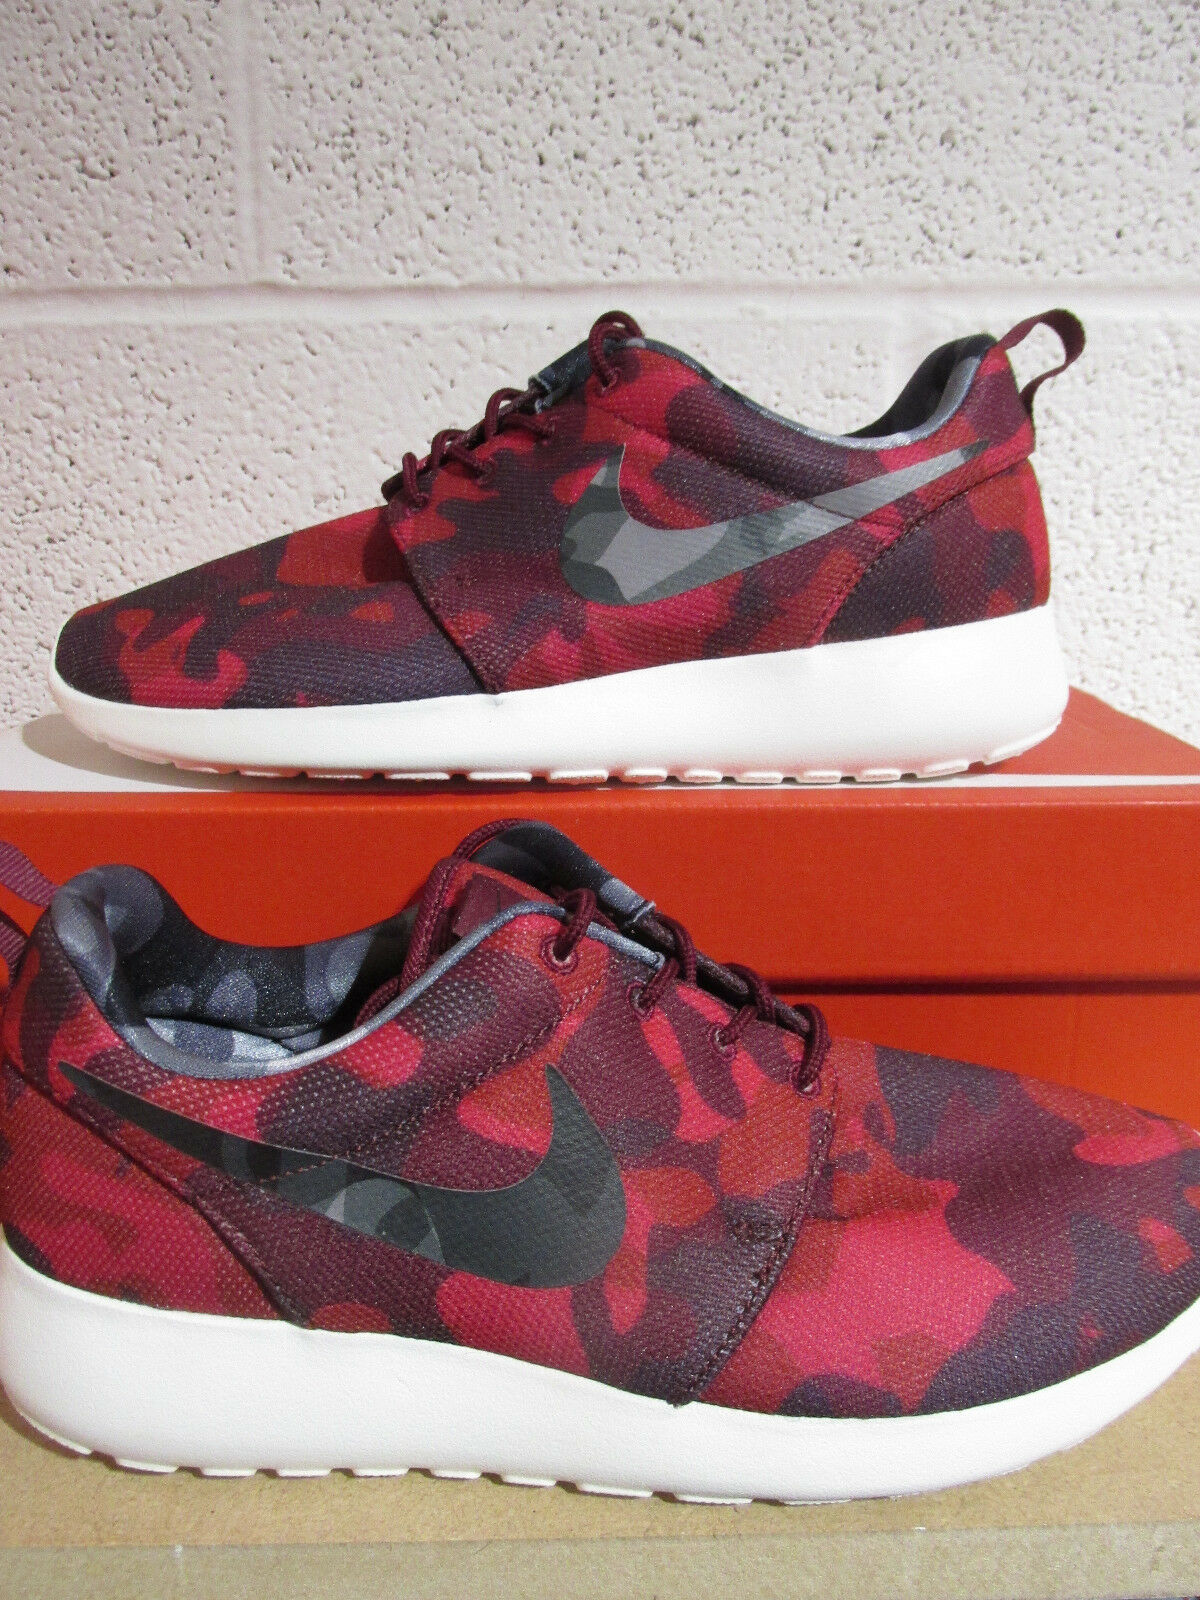 Nike womens roshe one print running trainers 599432 606 sneakers shoes